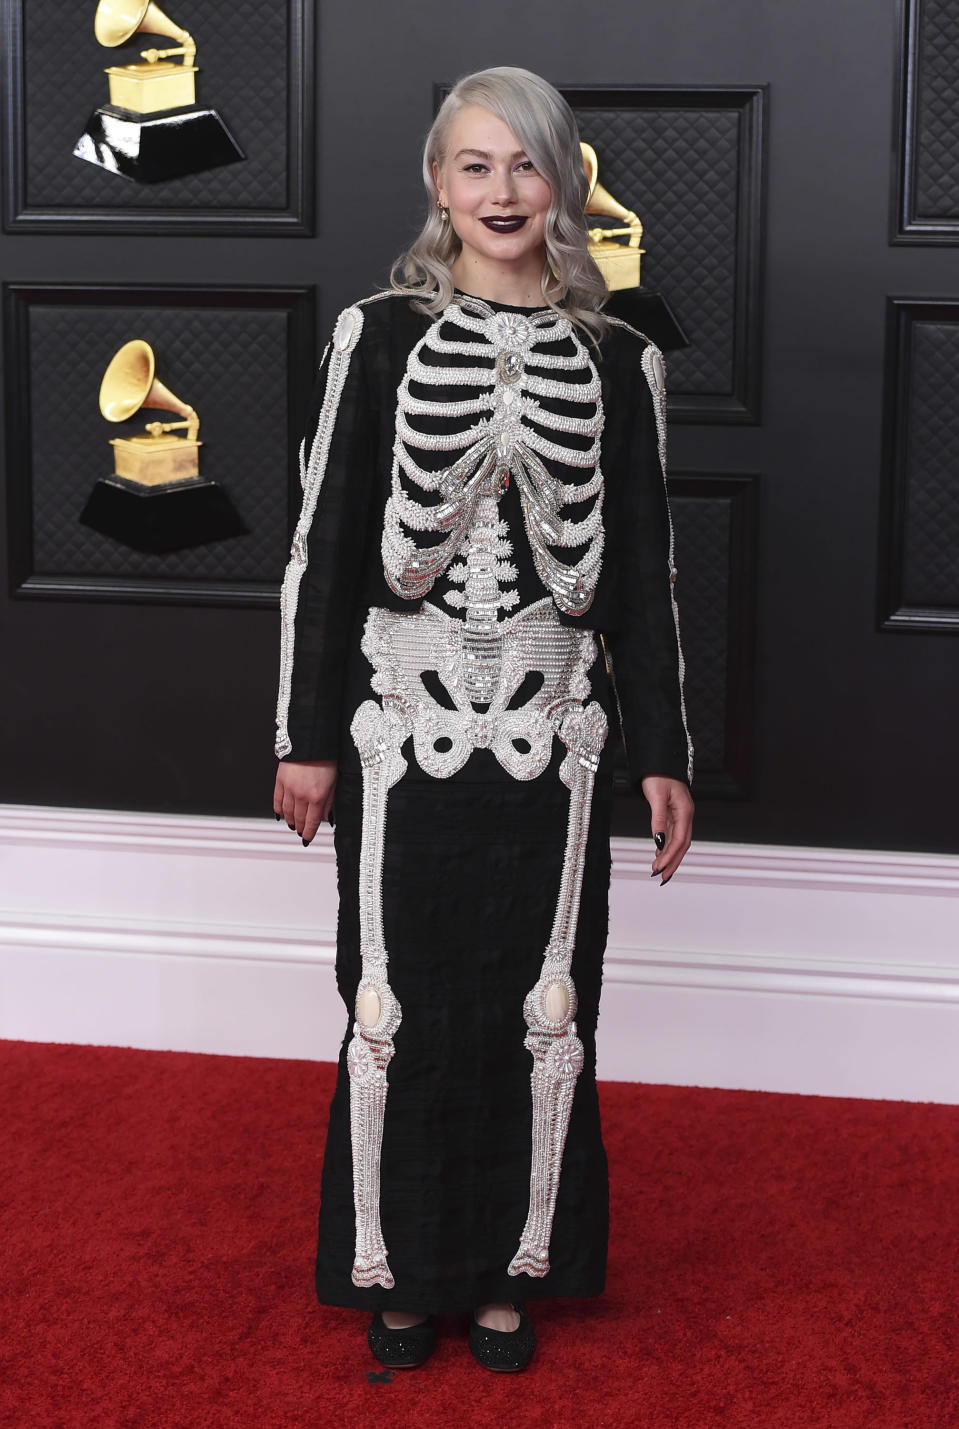 Phoebe Bridgers arrives at the 63rd annual Grammy Awards at the Los Angeles Convention Center on Sunday, March 14, 2021. (Photo by Jordan Strauss/Invision/AP)